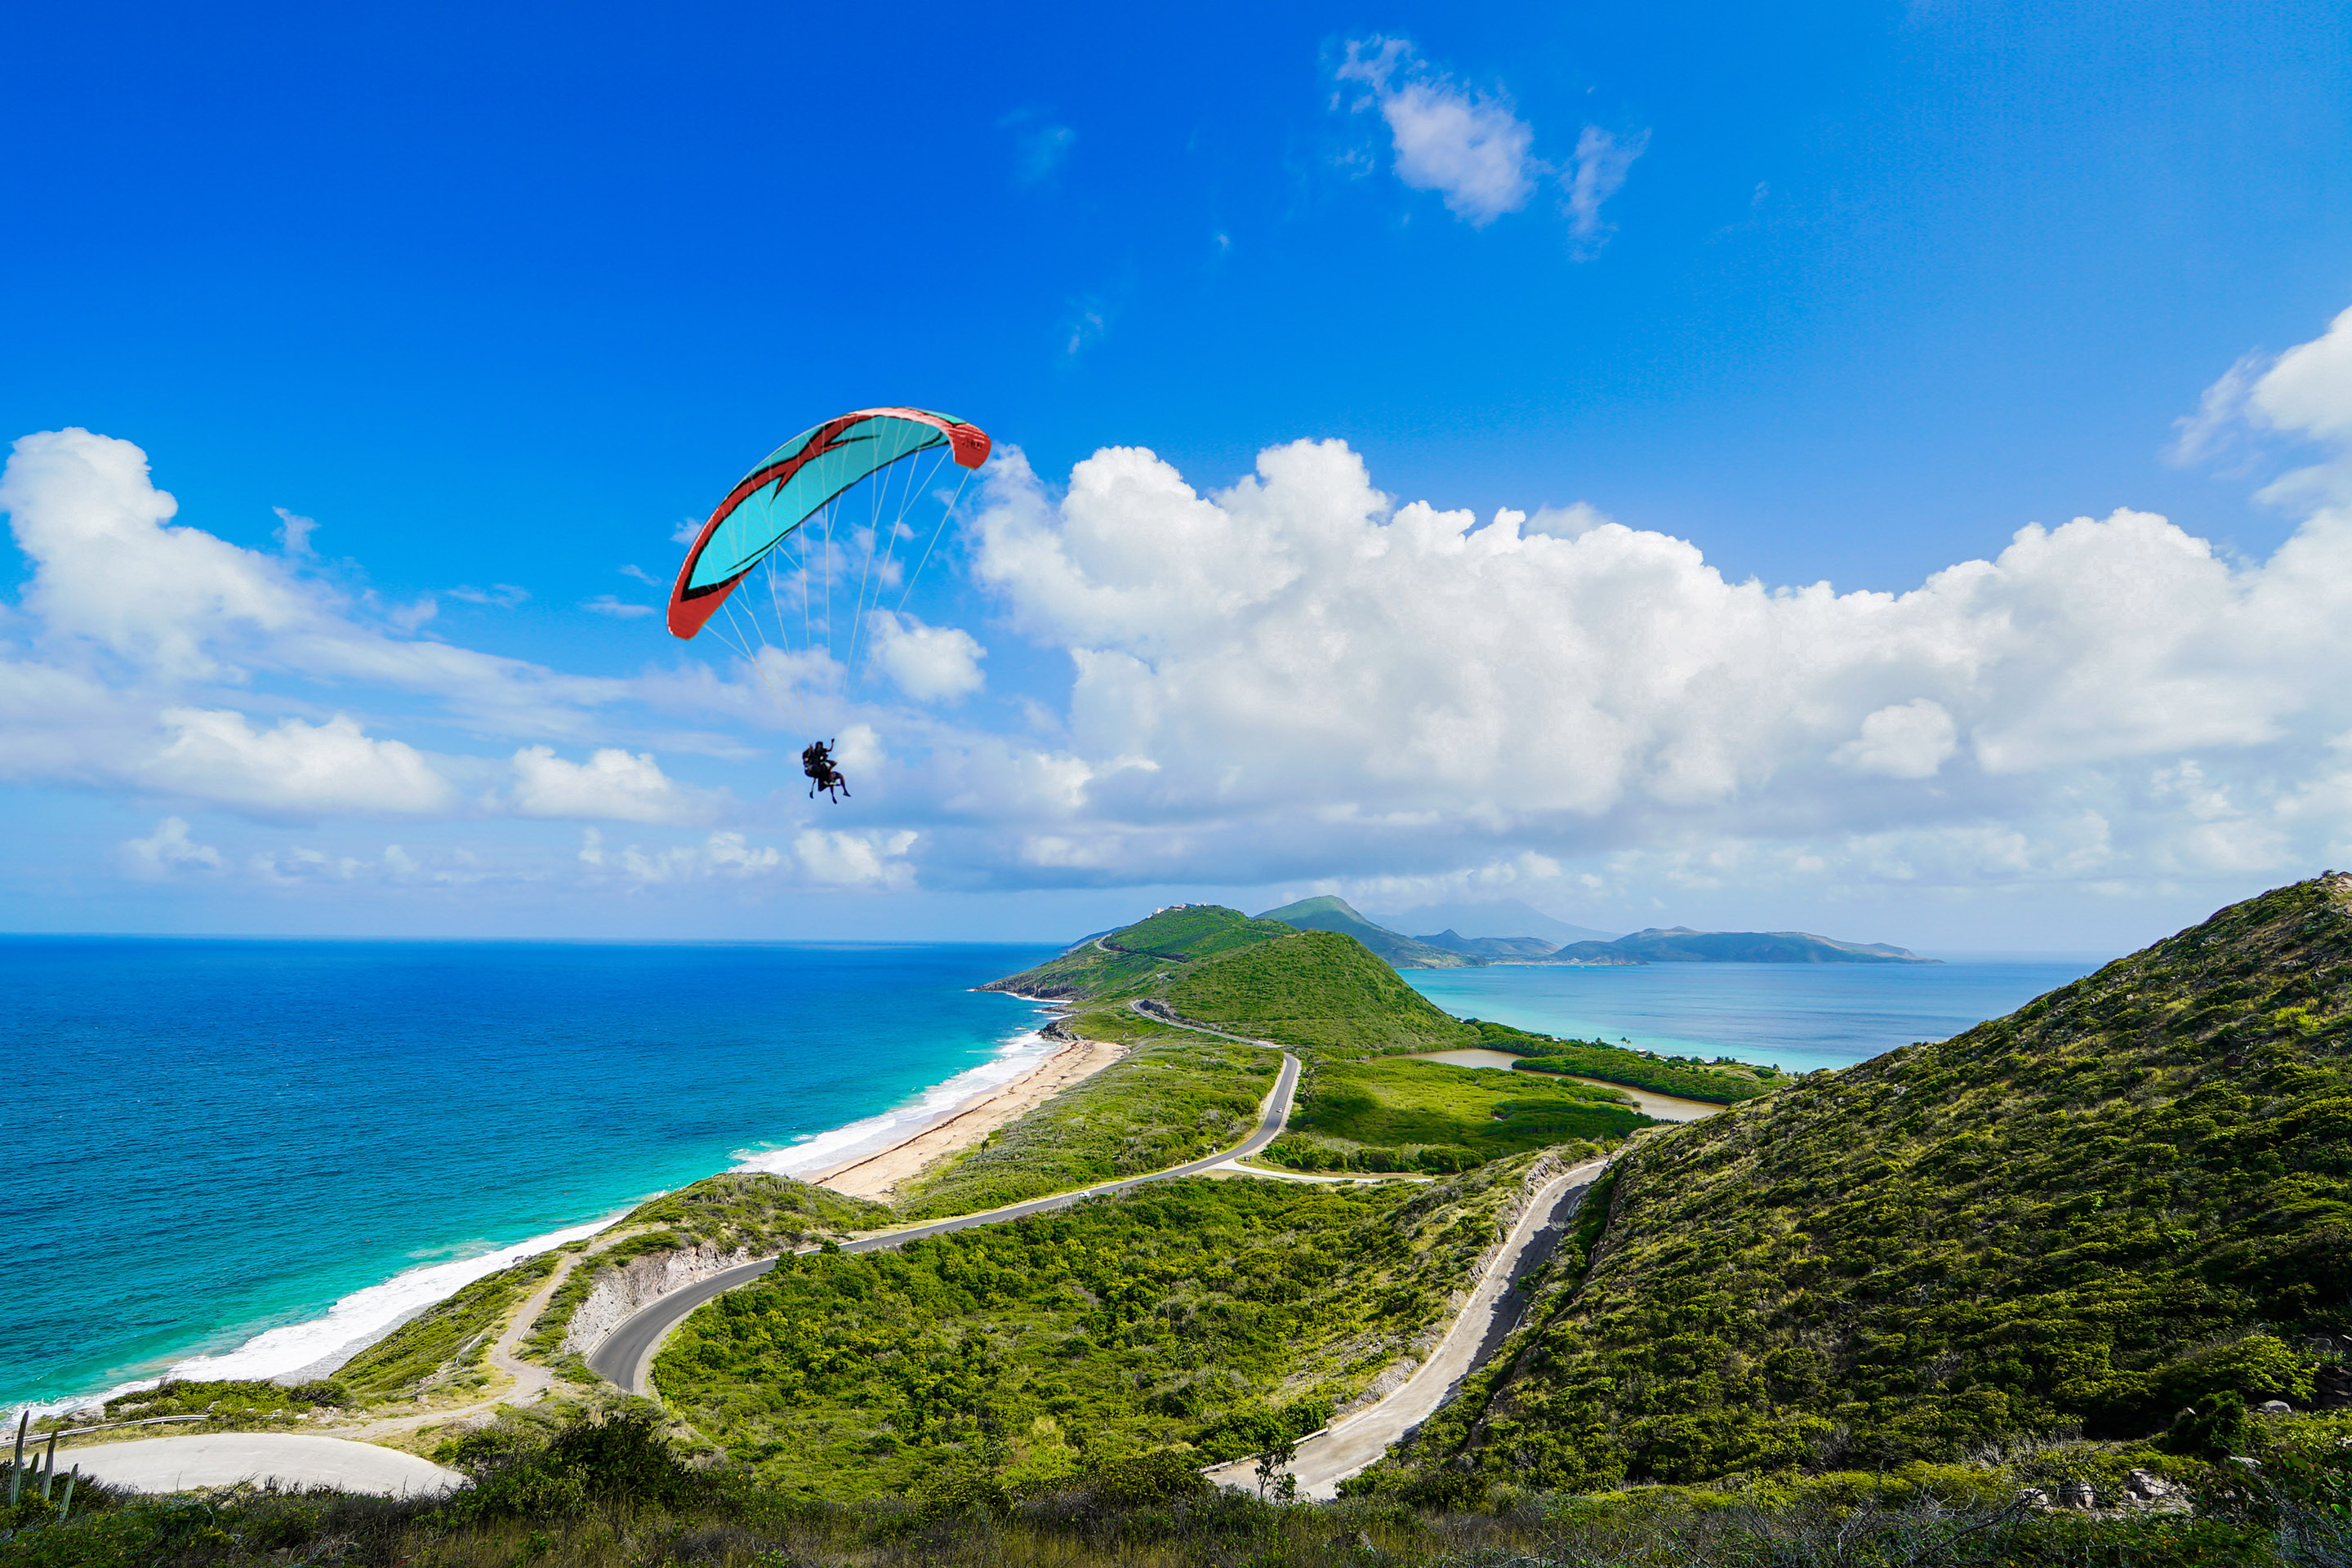 Basseterre, St. Kitts Timothy Hills Paragliding